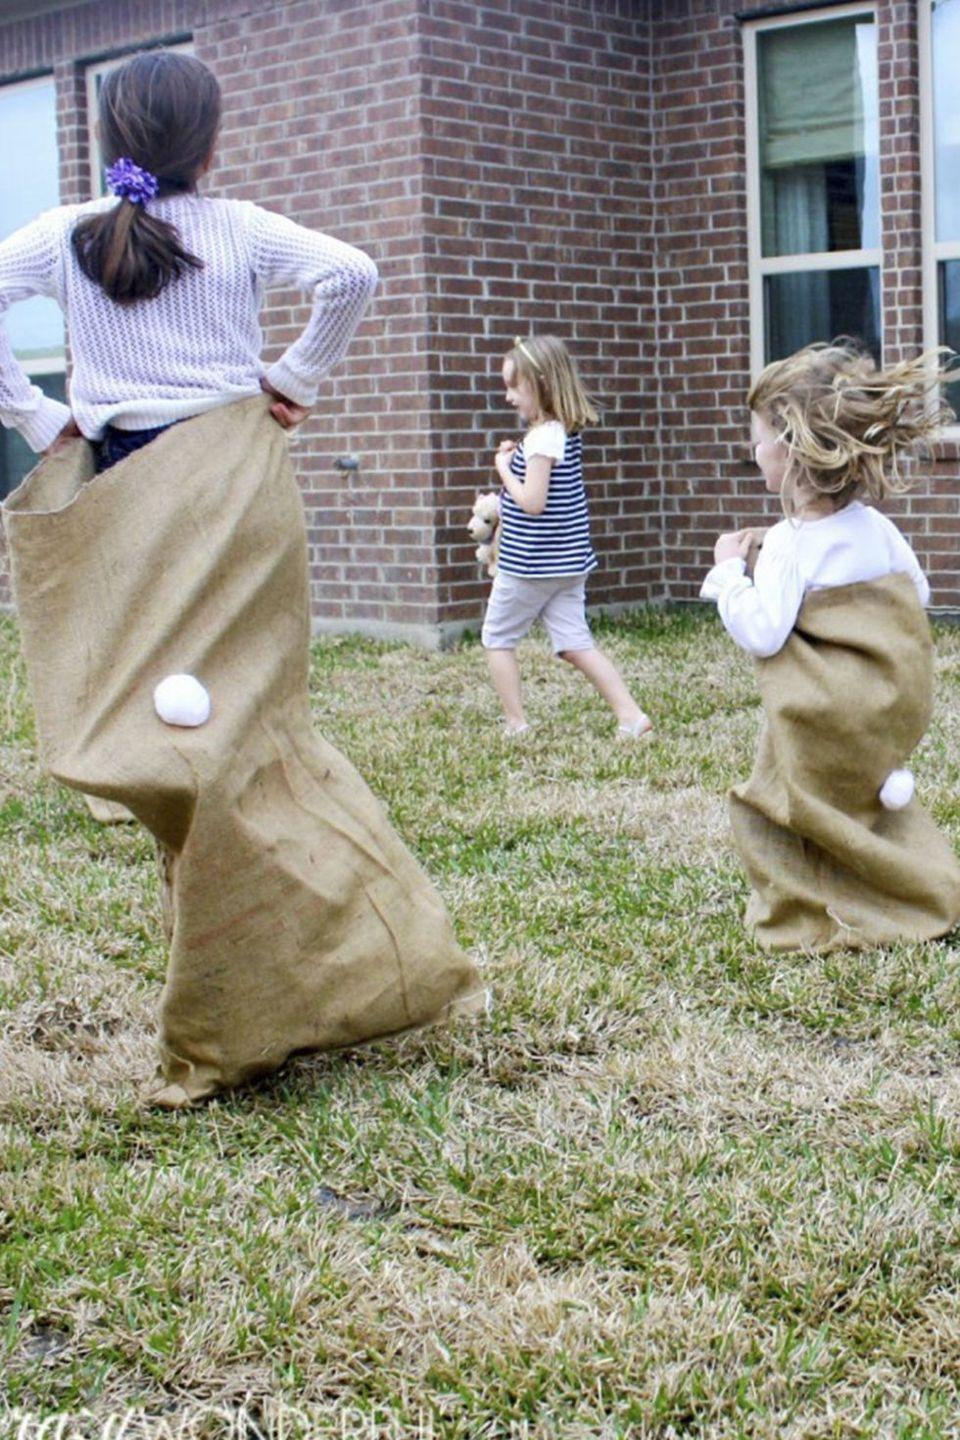 "<p>Hours of Easter fun, here we come! All you need to create this fun outdoor game is a burlap sack and a little white ""tail."" </p><p><strong>Get the tutorial at <a href=""https://www.crazy-wonderful.com/bunny-birthday-party/"" rel=""nofollow noopener"" target=""_blank"" data-ylk=""slk:Crazy Wonderful"" class=""link rapid-noclick-resp"">Crazy Wonderful</a>. </strong></p><p><strong><a class=""link rapid-noclick-resp"" href=""https://www.amazon.com/Large-Burlap-Bags-Potato-Obstacle/dp/B07HGJQKYT?tag=syn-yahoo-20&ascsubtag=%5Bartid%7C10050.g.3100%5Bsrc%7Cyahoo-us"" rel=""nofollow noopener"" target=""_blank"" data-ylk=""slk:SHOP BURLAP SACKS"">SHOP BURLAP SACKS</a></strong></p>"